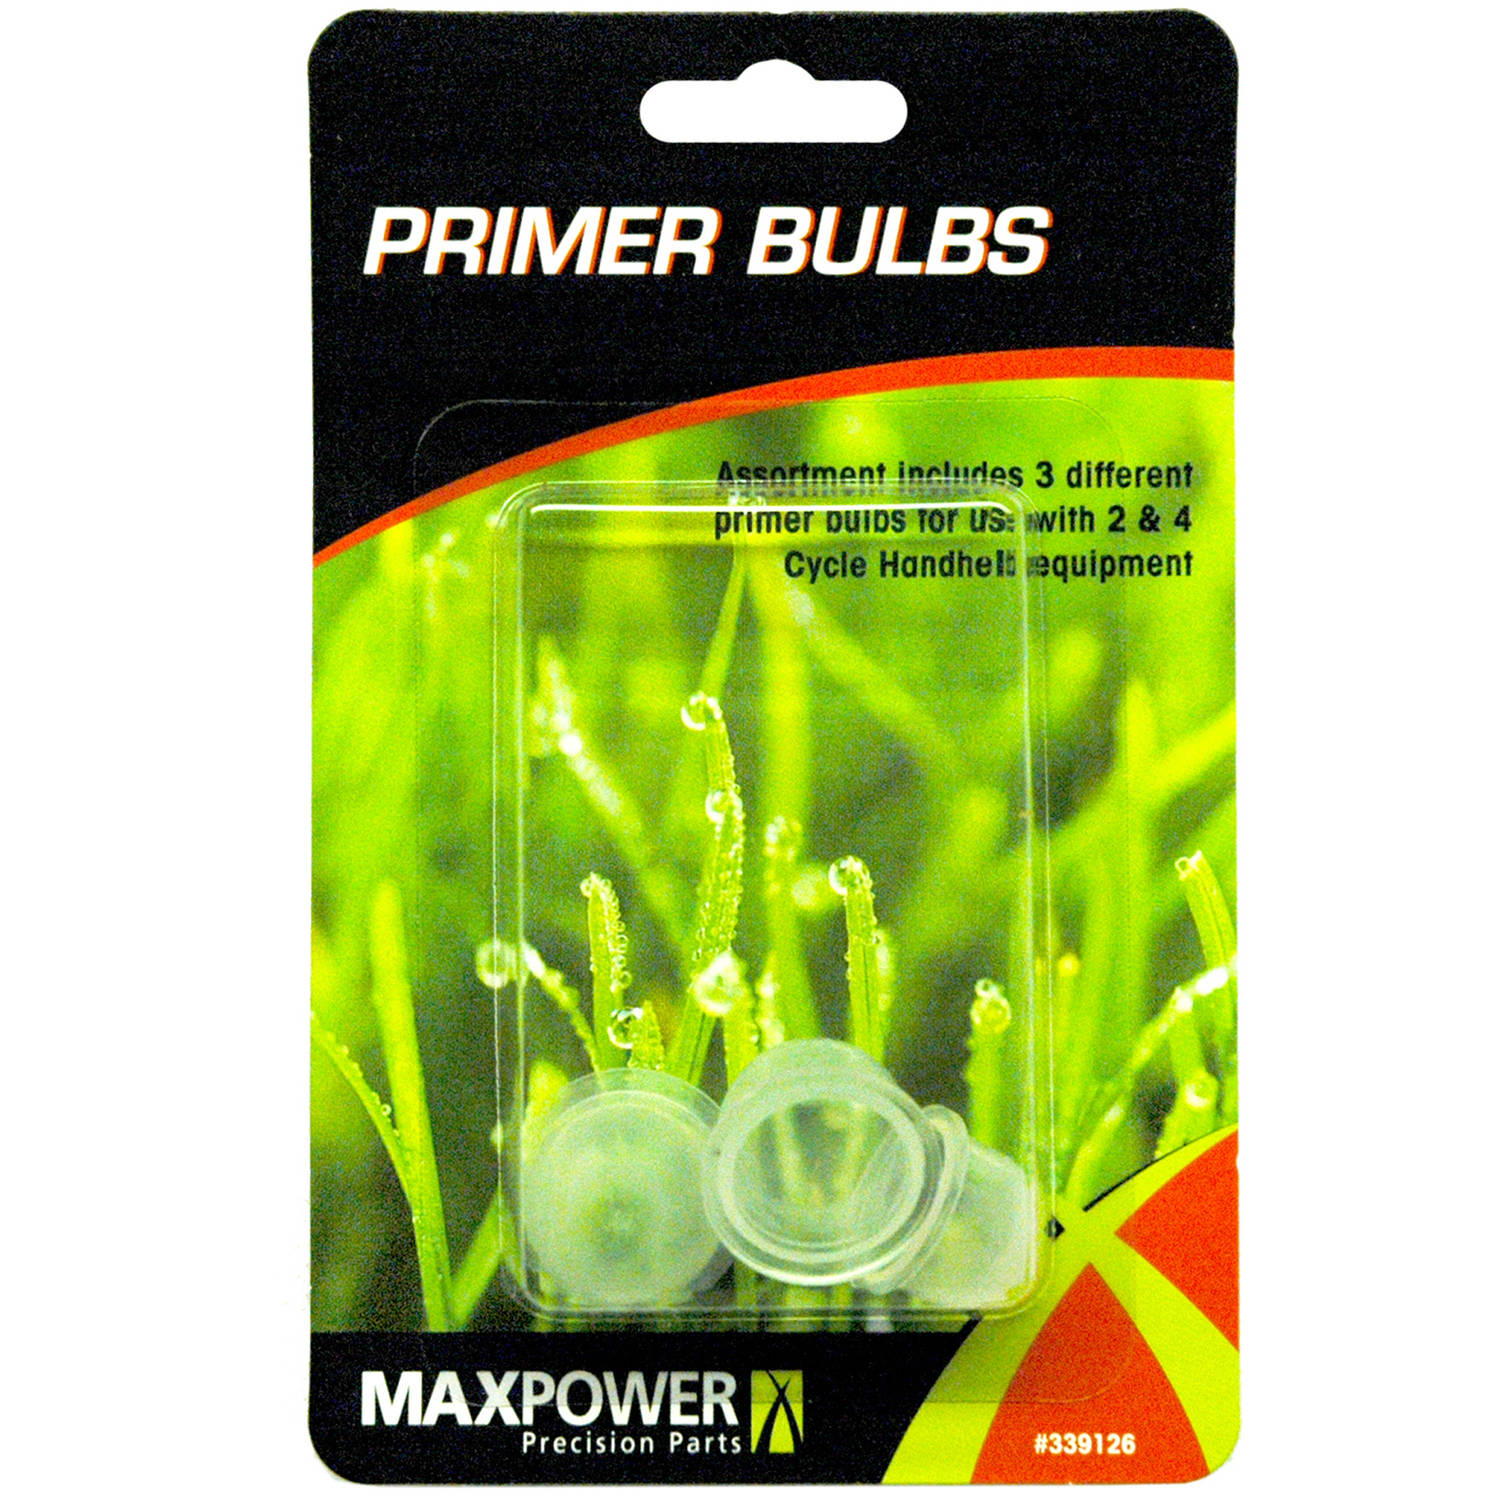 Maxpower 339126 Primer Bulb Combo Pack 3 Count